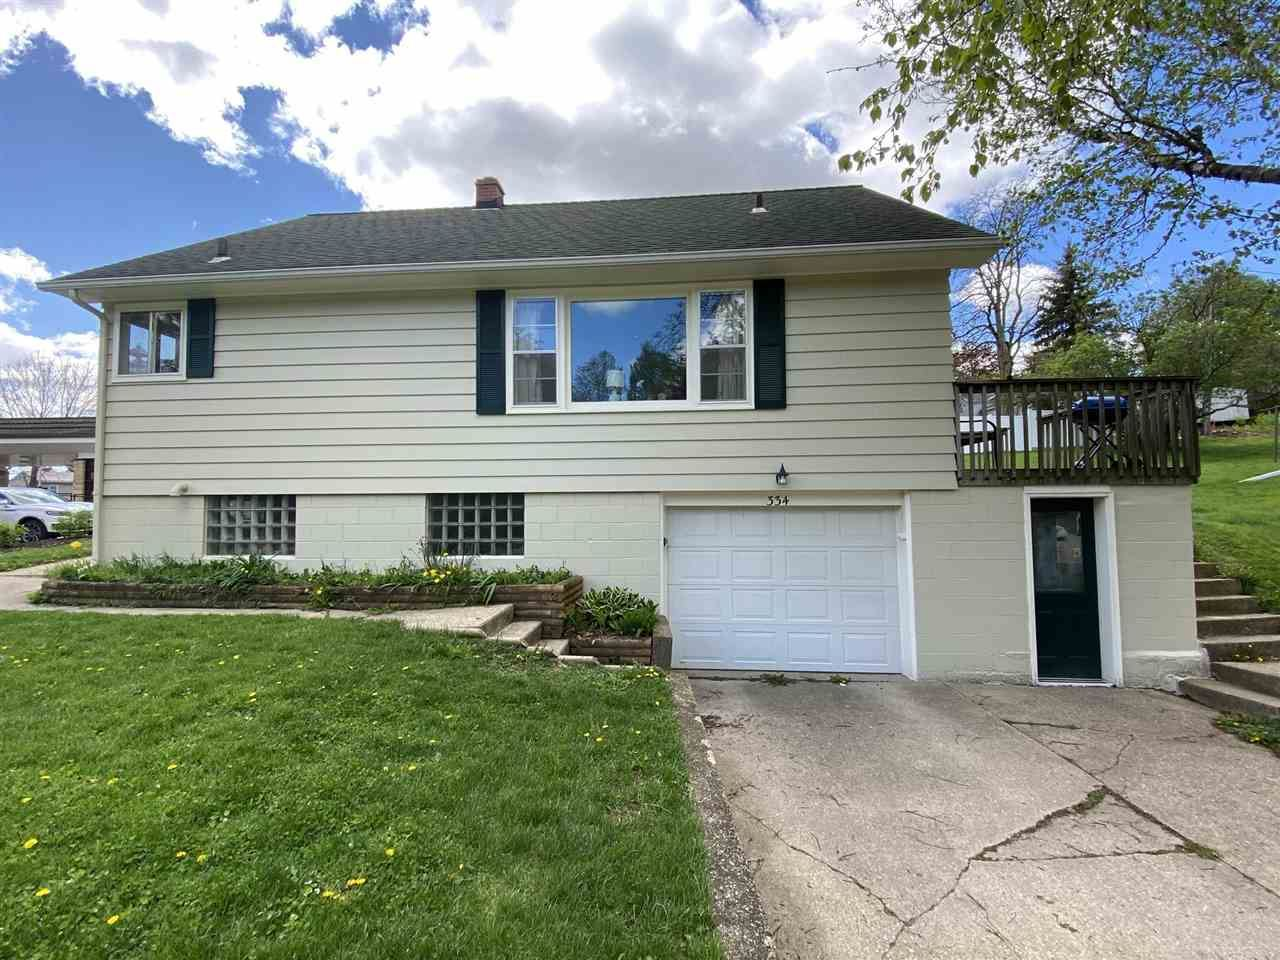 334 Church St, Mineral Point, WI 53565 - #: 1908476